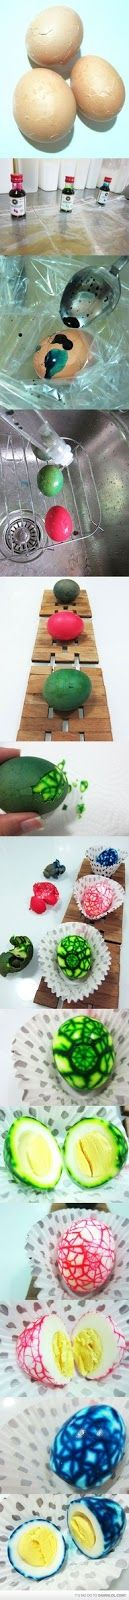 DIY abd Crafts photo | DIY and Crafts photos